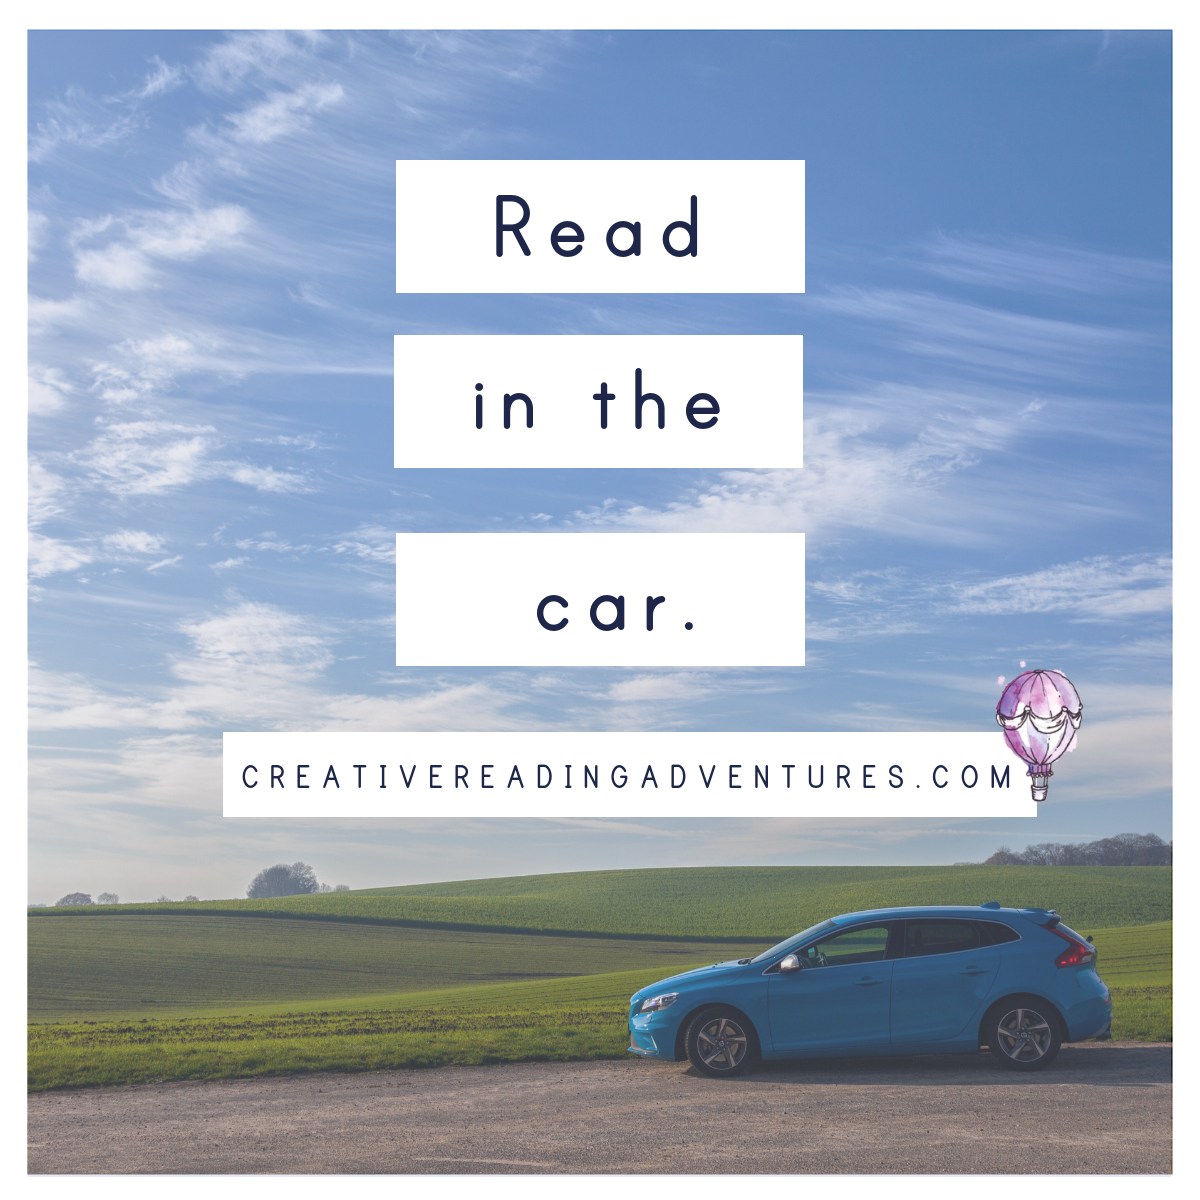 Read in the car